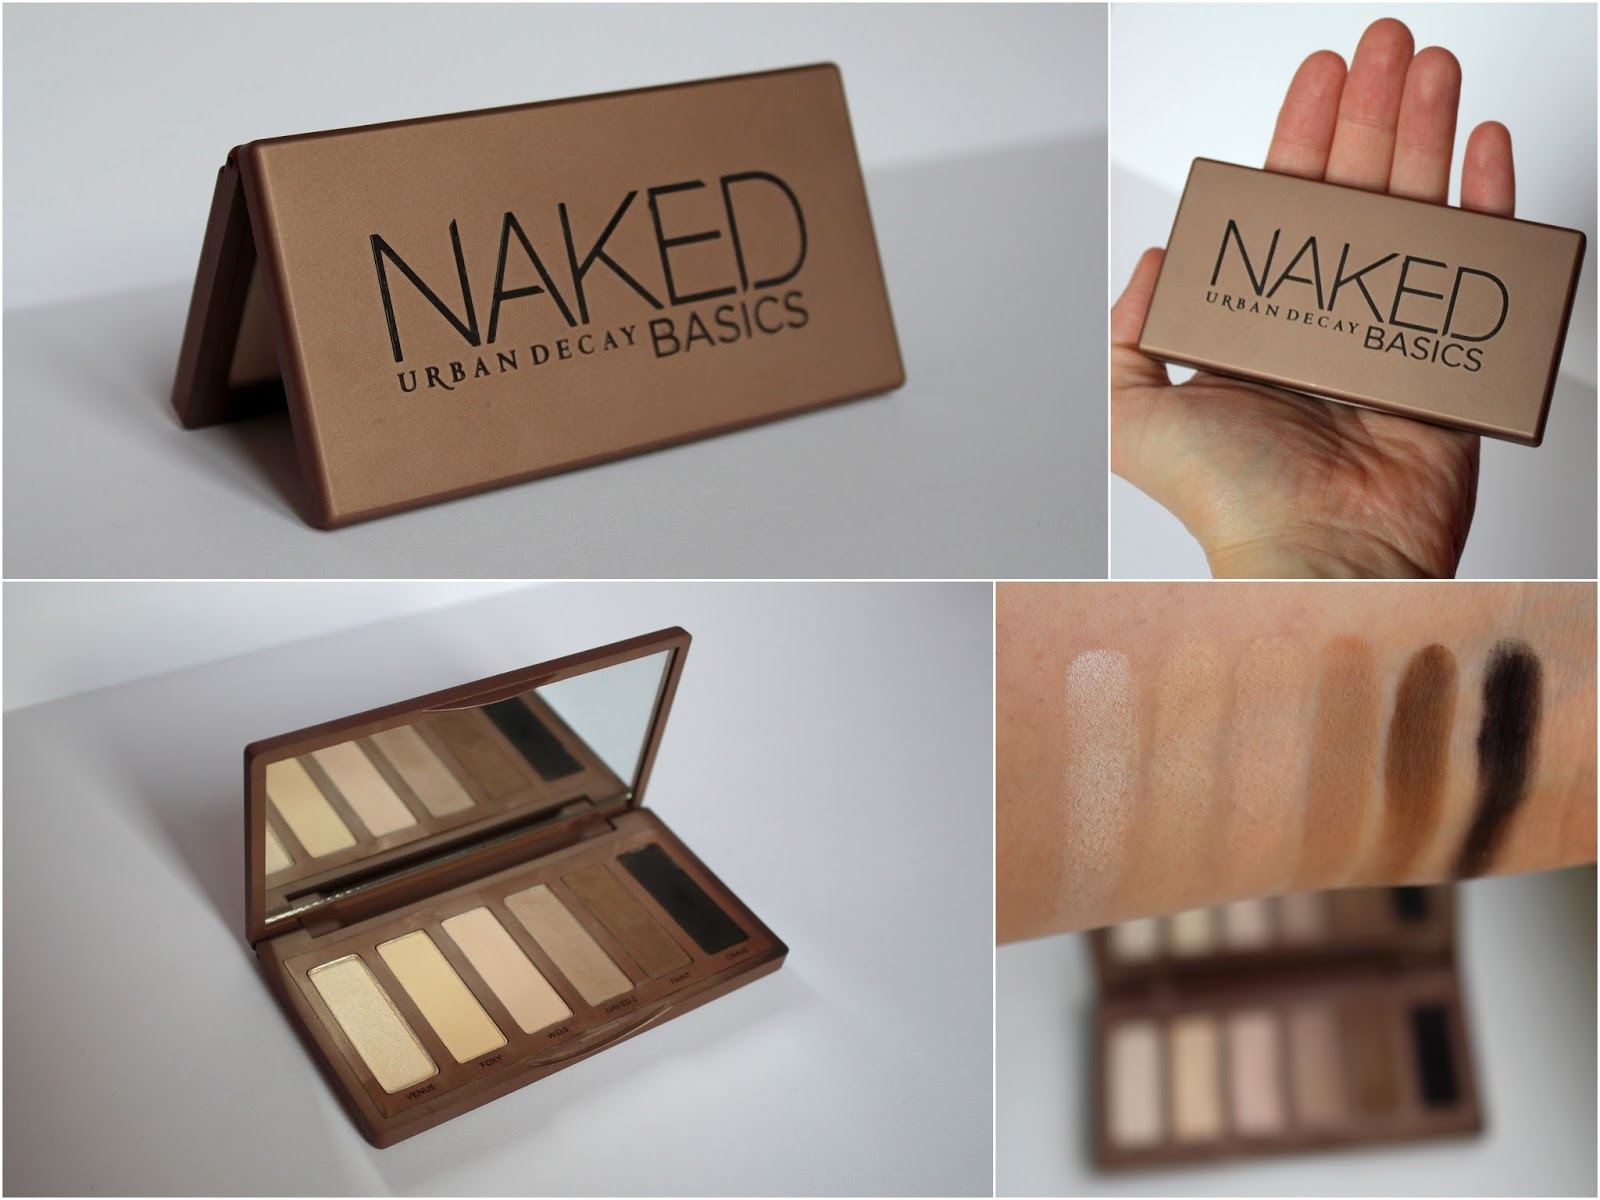 http://ulliks.blogspot.co.at/2014/11/urban-decay-naked-basics-palette-review.html